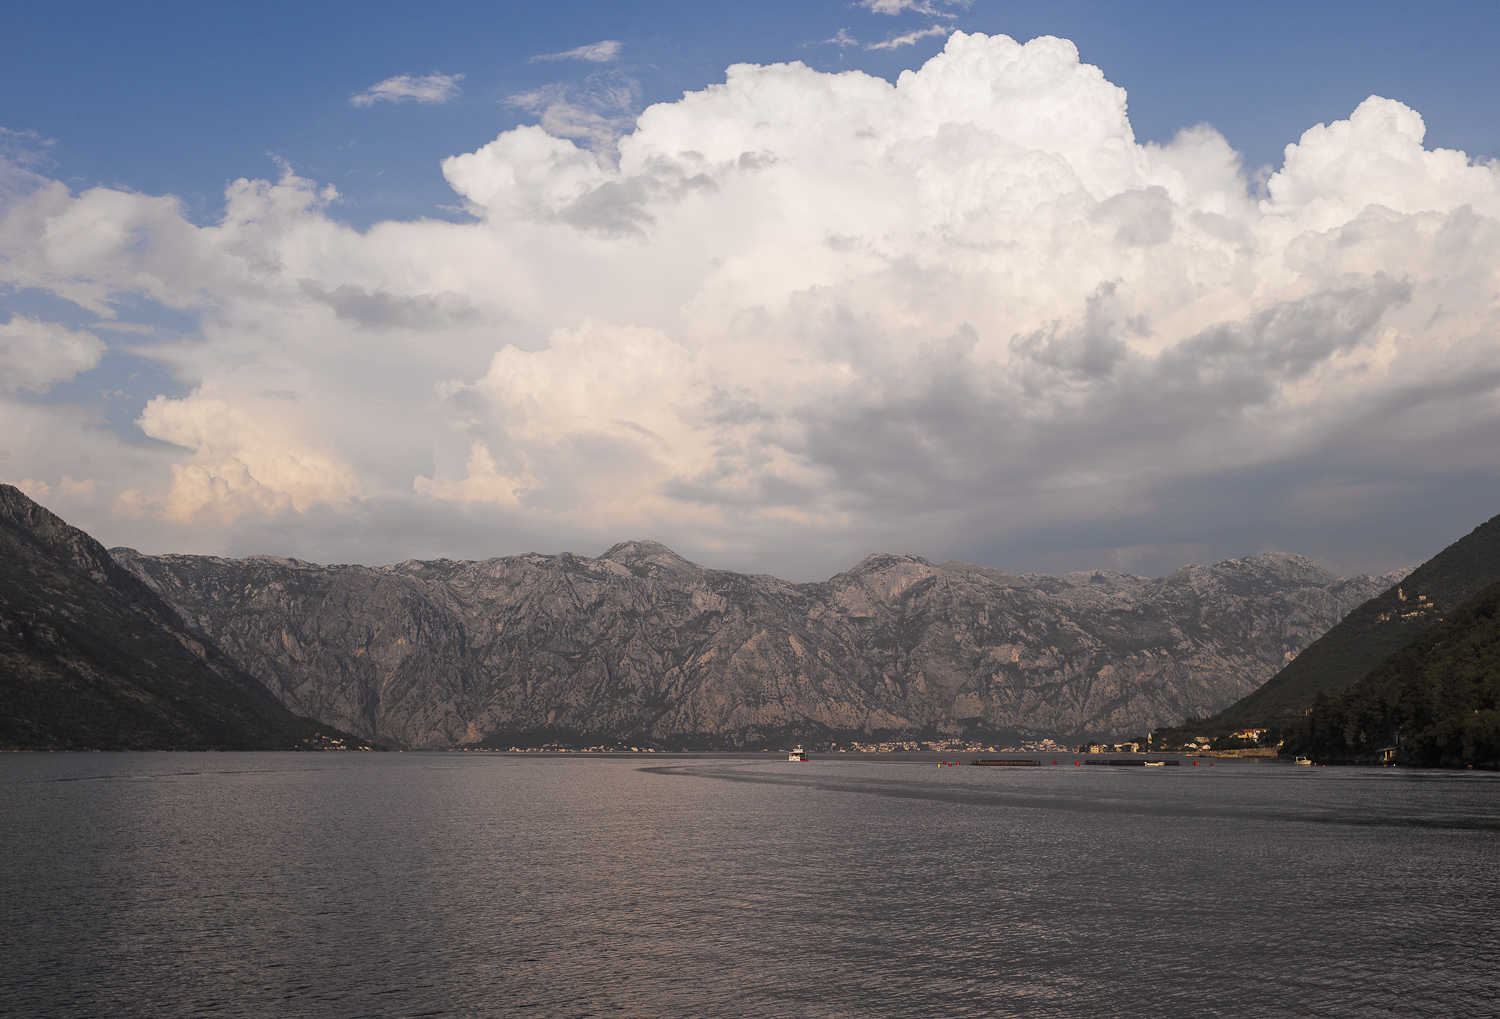 Bay of Kotor - Montenegro, 2008